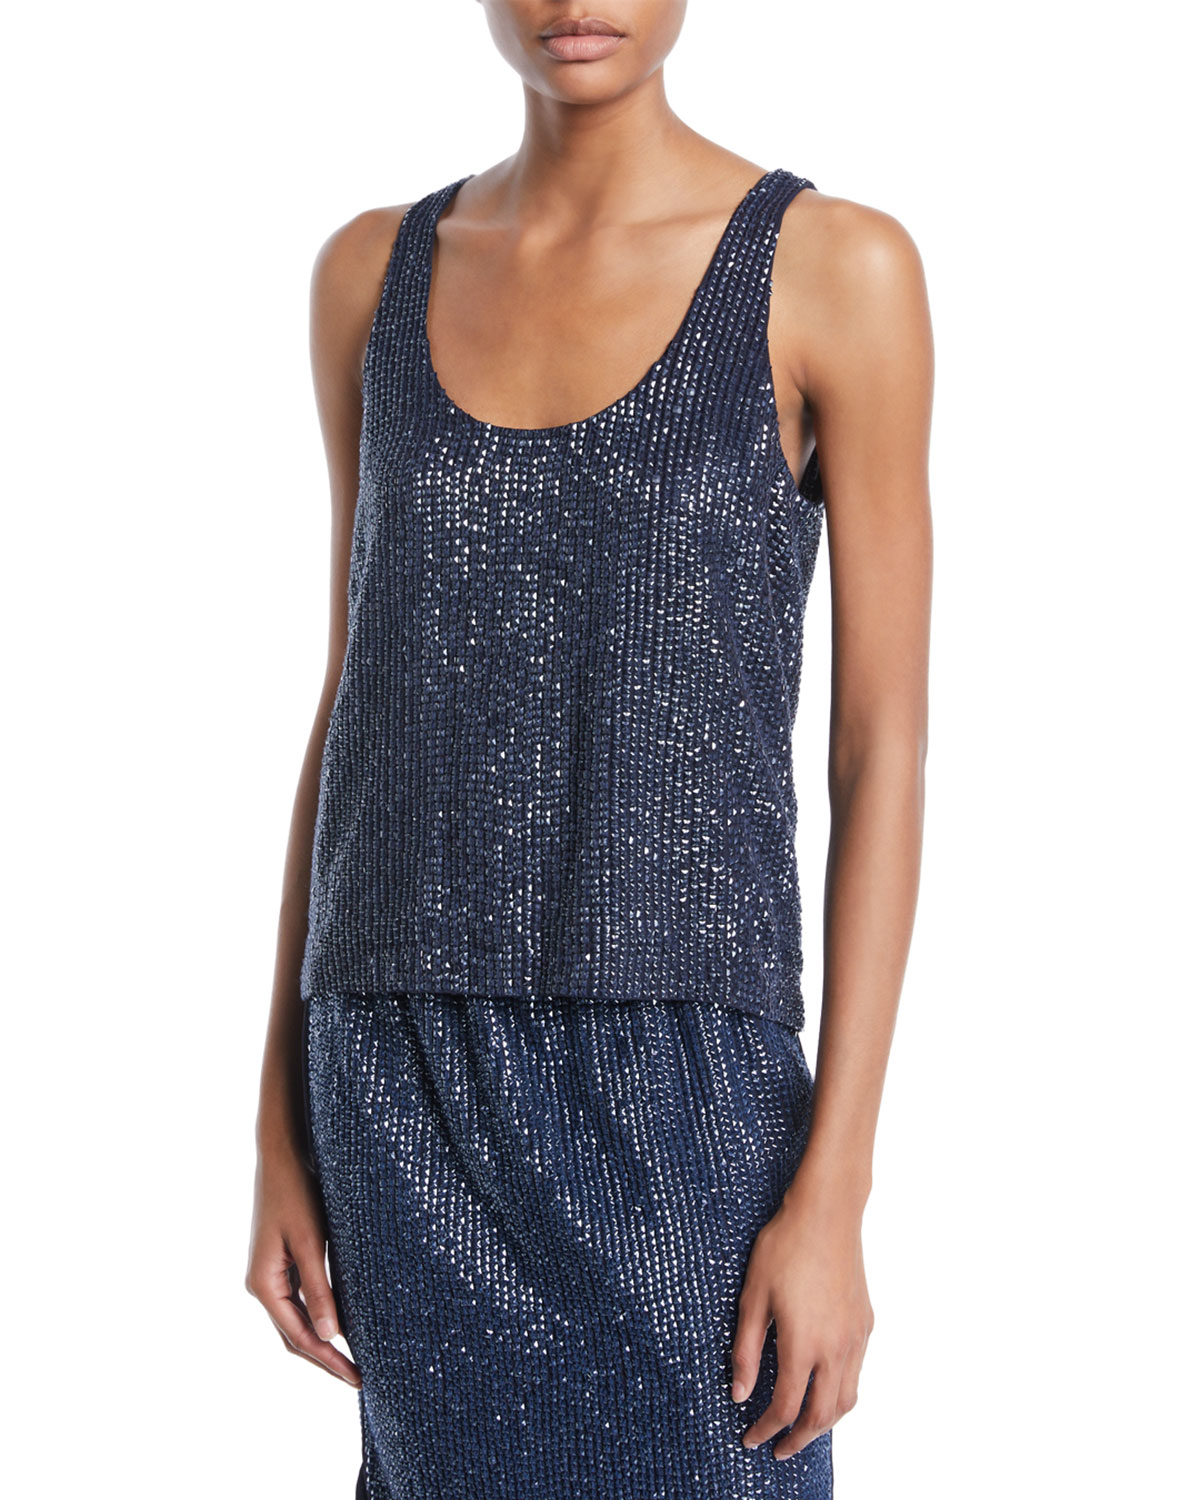 Deluca Sequin Tank Top